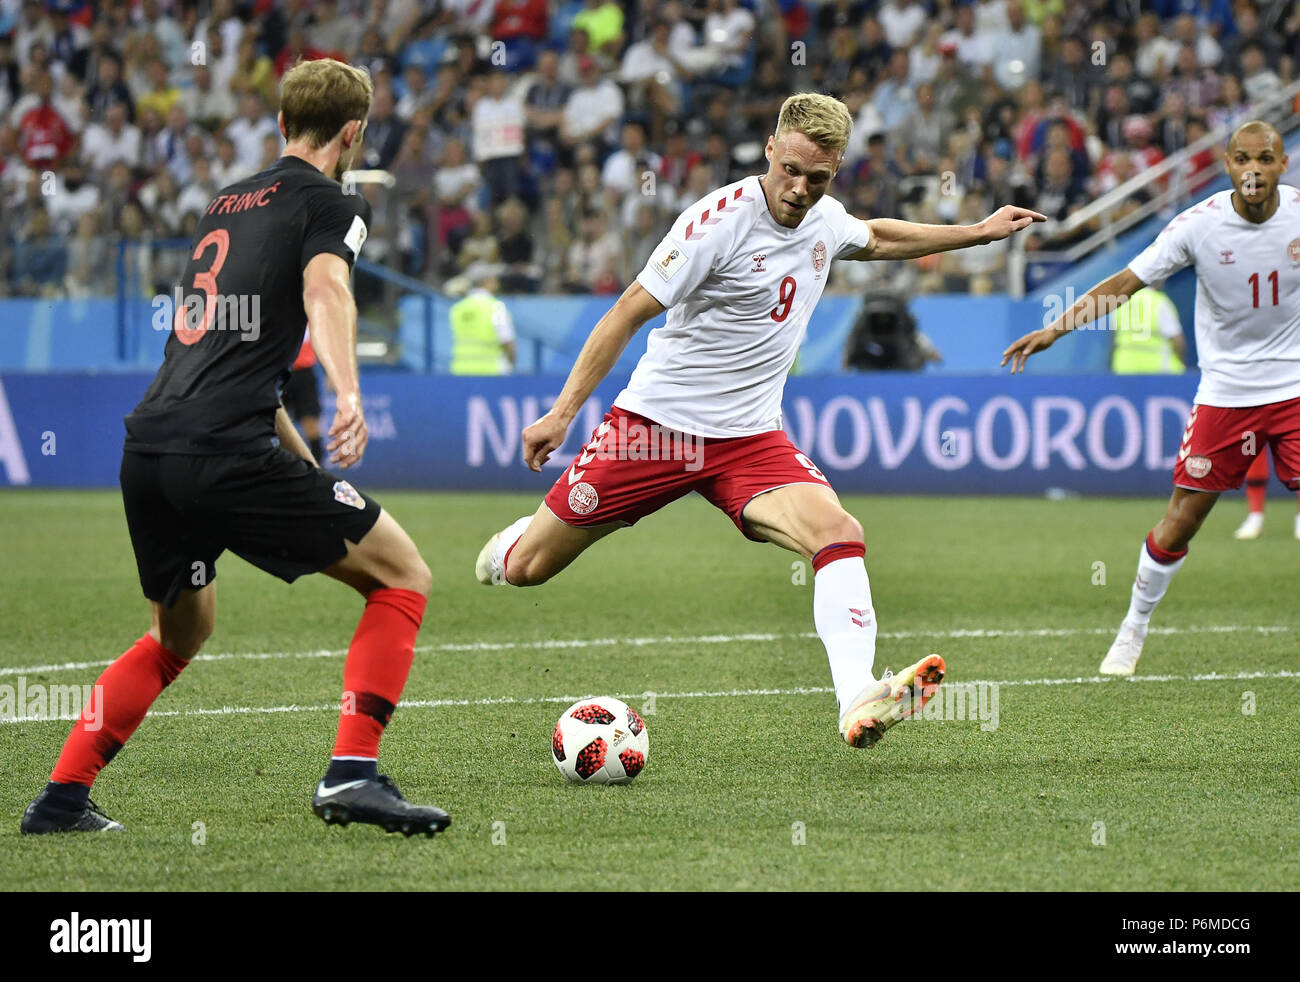 Nizhny Novgorod, Russia. 1st July, 2018. Nicolai Jorgensen (C) of Denmark shoots during the 2018 FIFA World Cup round of 16 match between Croatia and Denmark in Nizhny Novgorod, Russia, July 1, 2018. Credit: He Canling/Xinhua/Alamy Live News - Stock Image